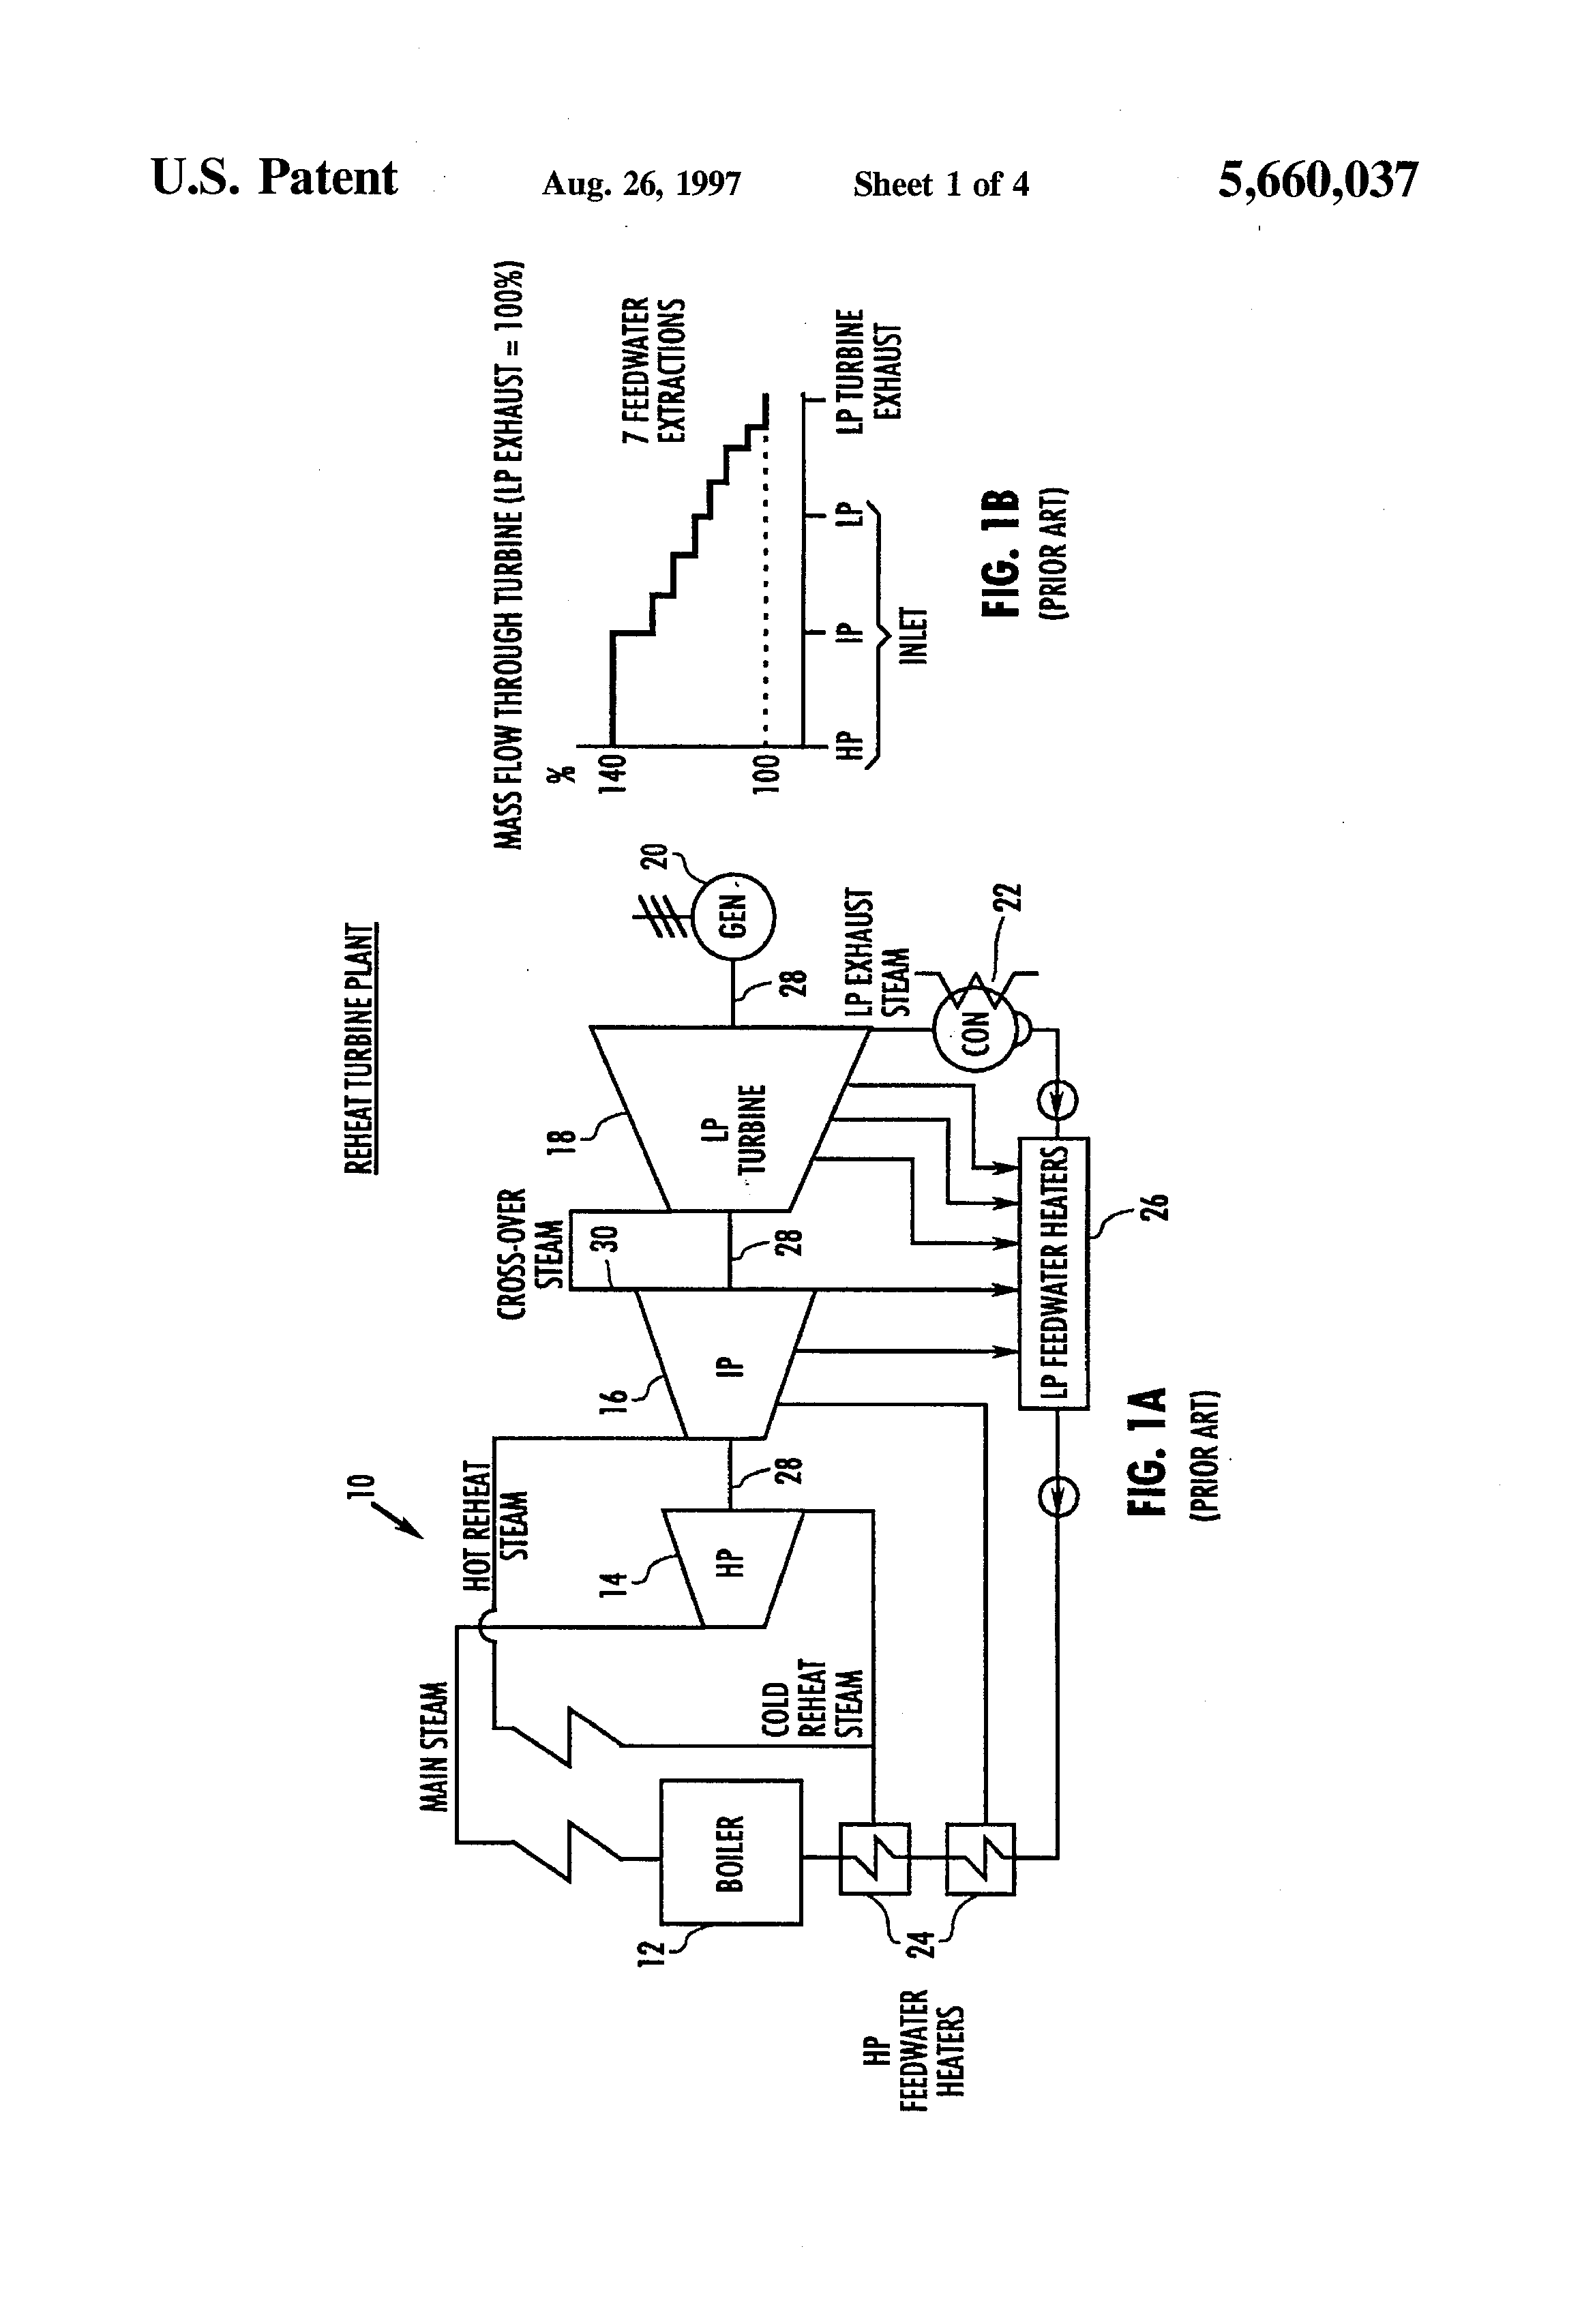 Patent US Method for conversion of a reheat steam turbine